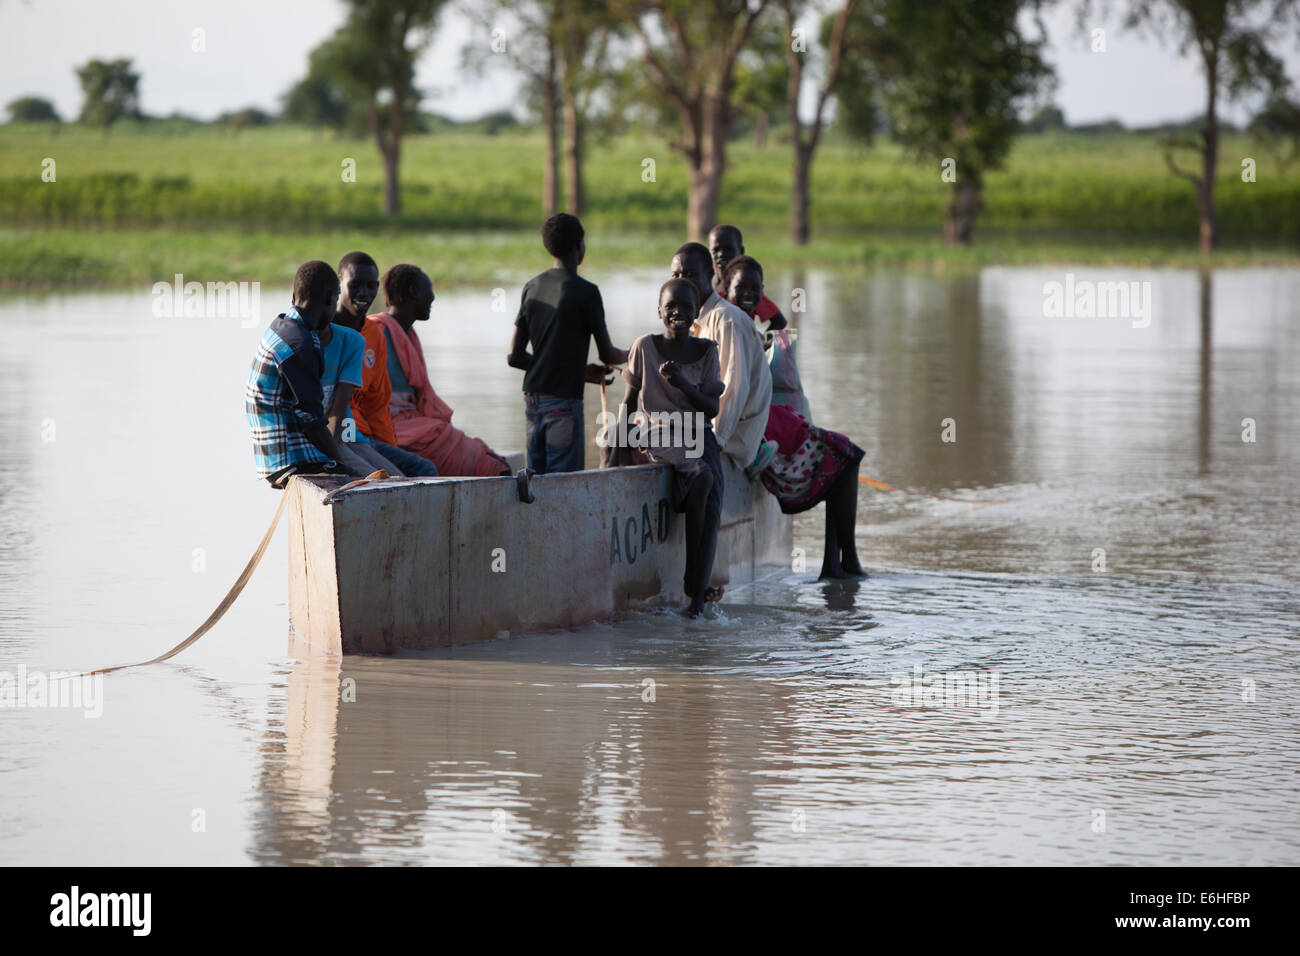 Children use boat donated by ACAD to cross River Achok at Agok, Abyei province, Sudan / South Sudan. - Stock Image